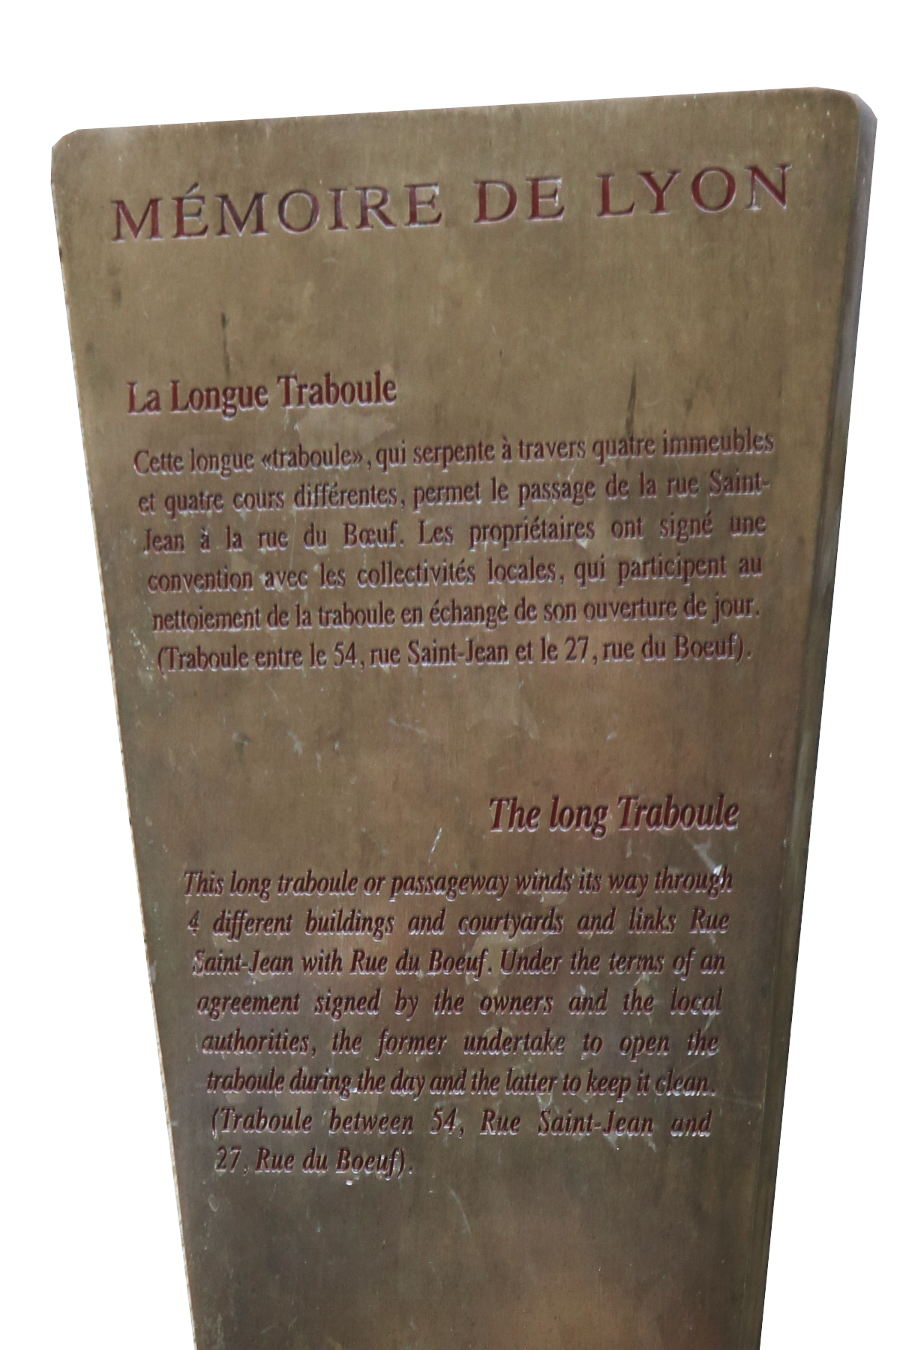 Lyon - History of the Traboules